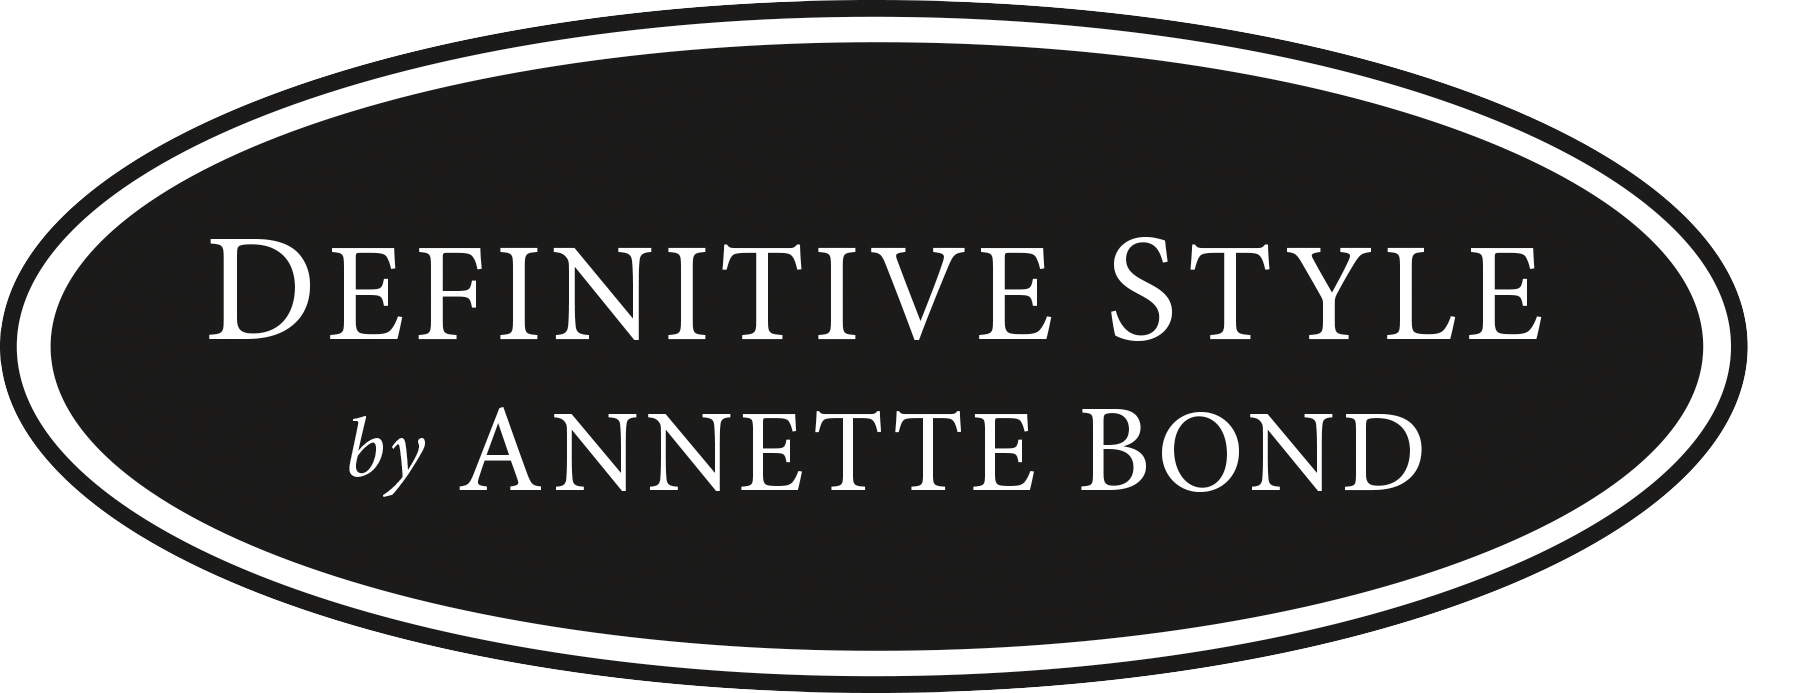 DefinitiveStyle_logo.png